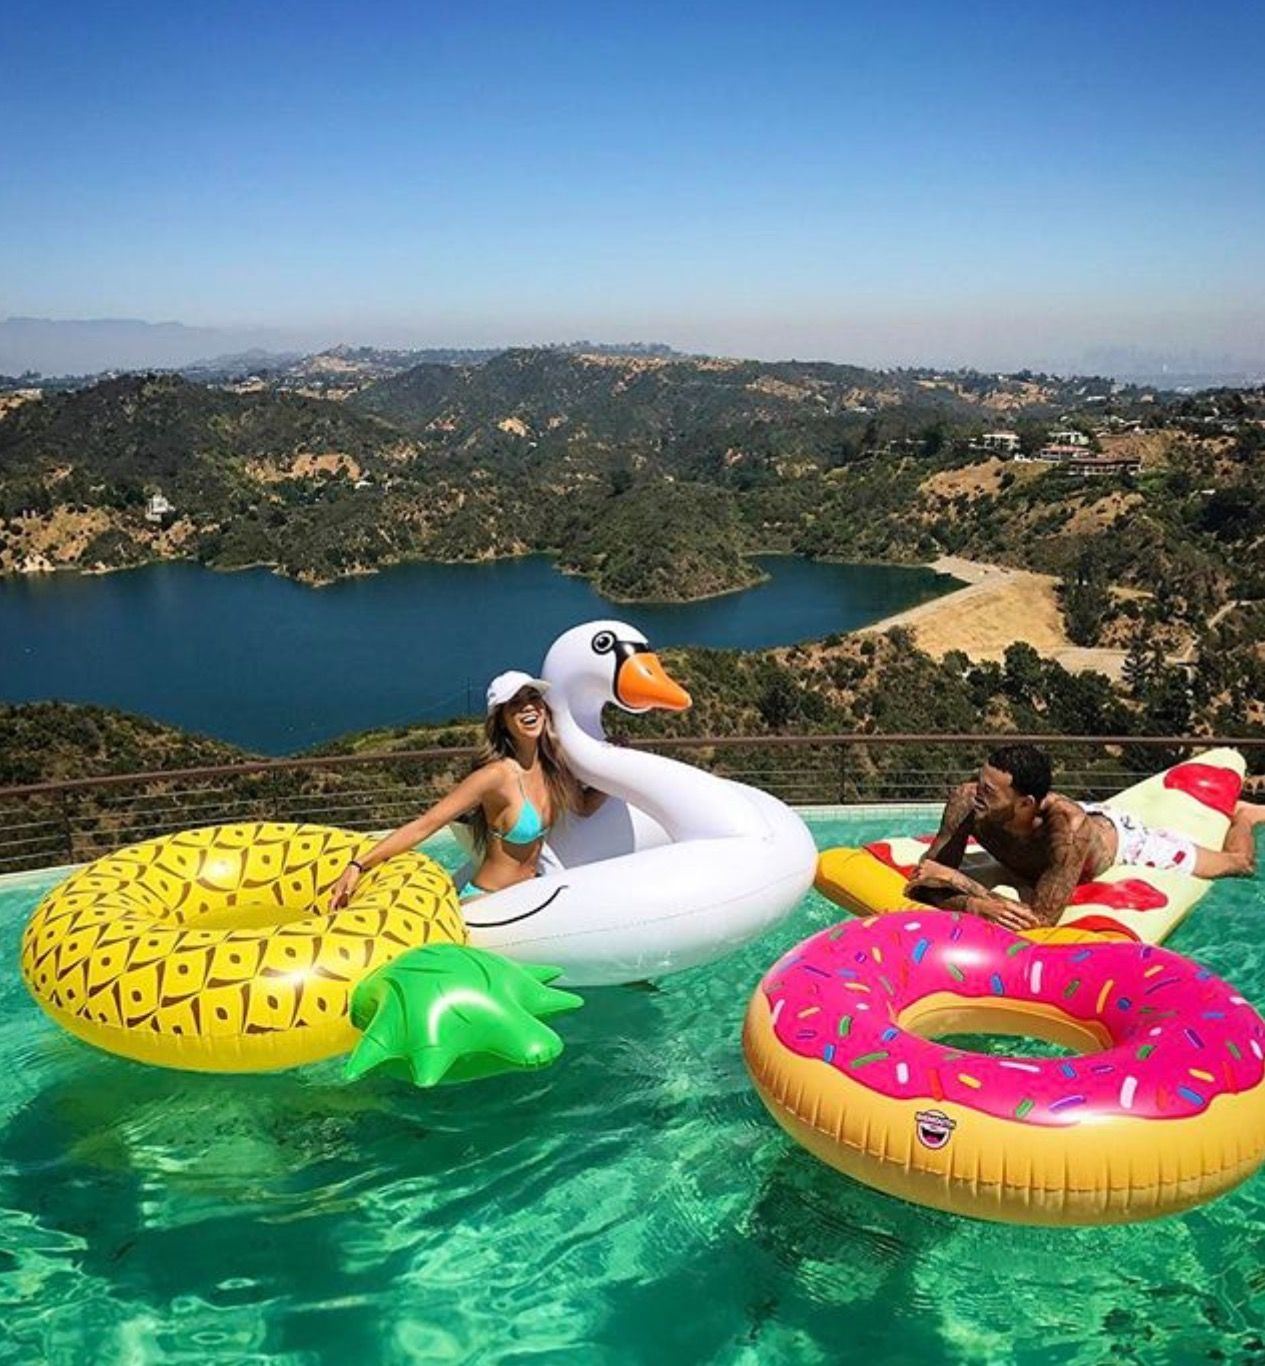 Flotadores Para Piscinas Pin De 𝓜𝓪𝓻í𝓪 𝓕 En Best Friend Pinterest Verano